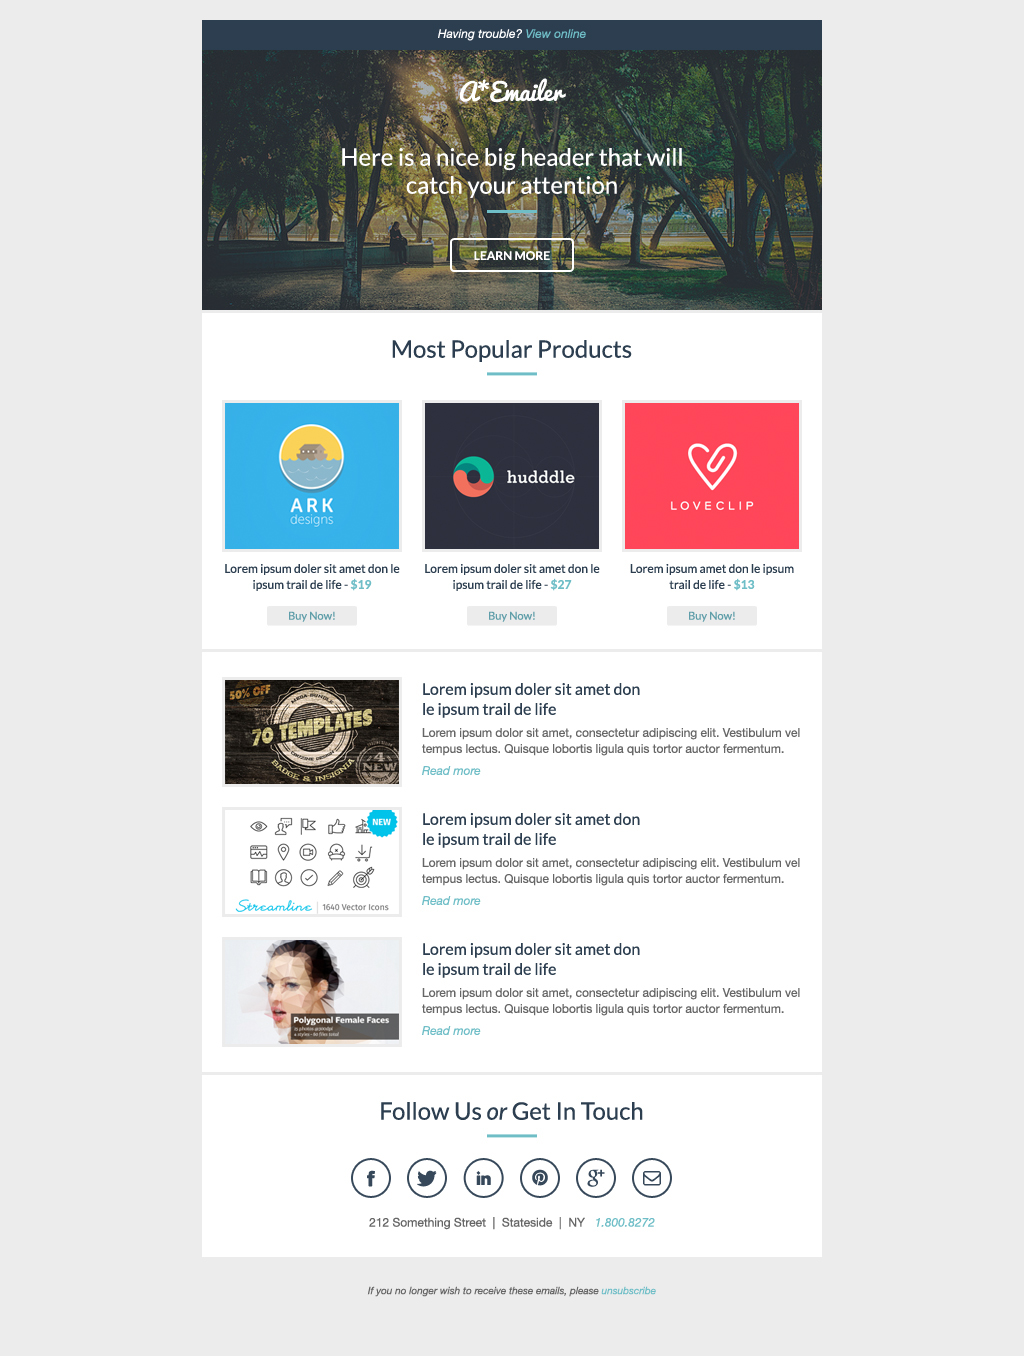 adam sanders a email template is a beautiful slick flat design responsive email template that can be used for anything from email newsletters to ecommerce email